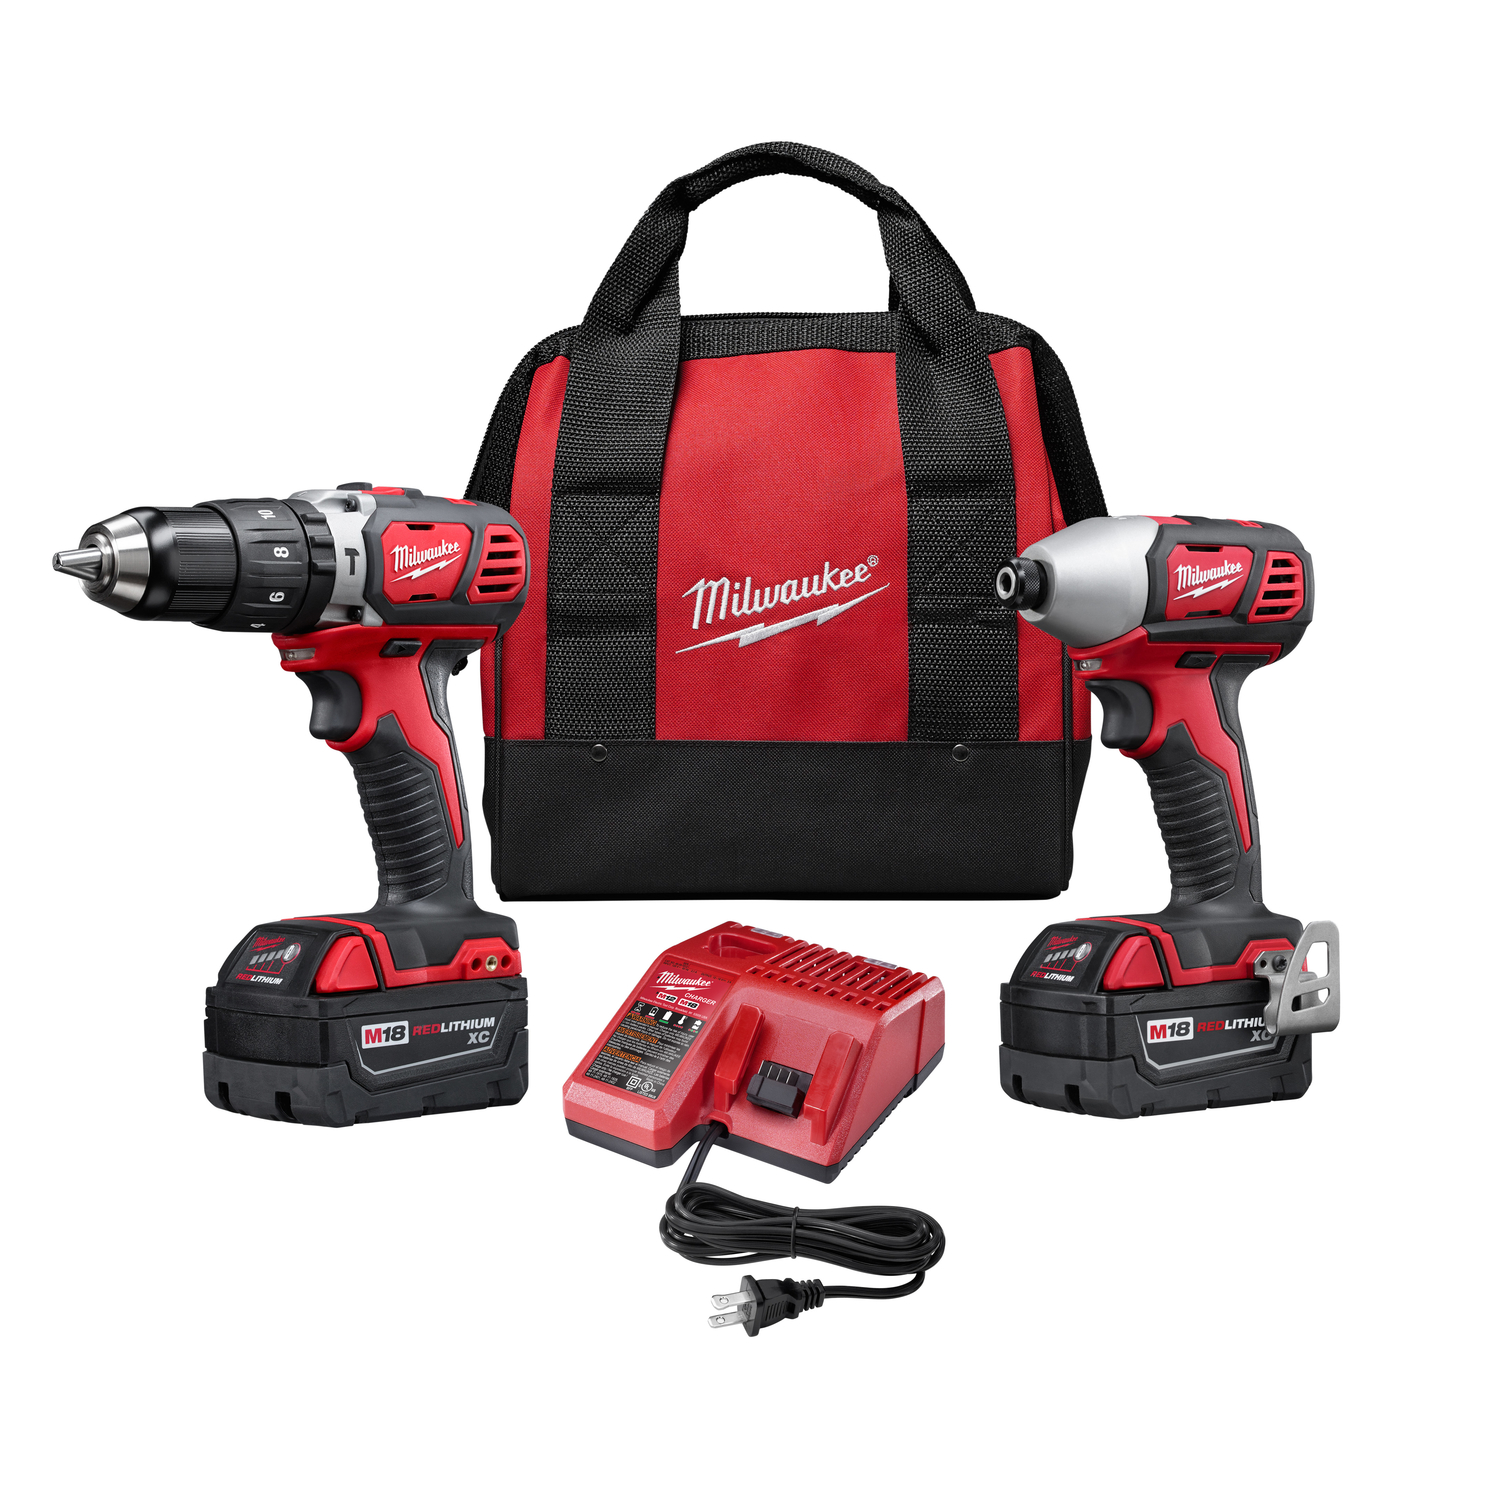 Milwaukee  M18  Cordless  Brushless 2 tool Hammer Drill and Impact Driver Kit  18 volt 3 amps